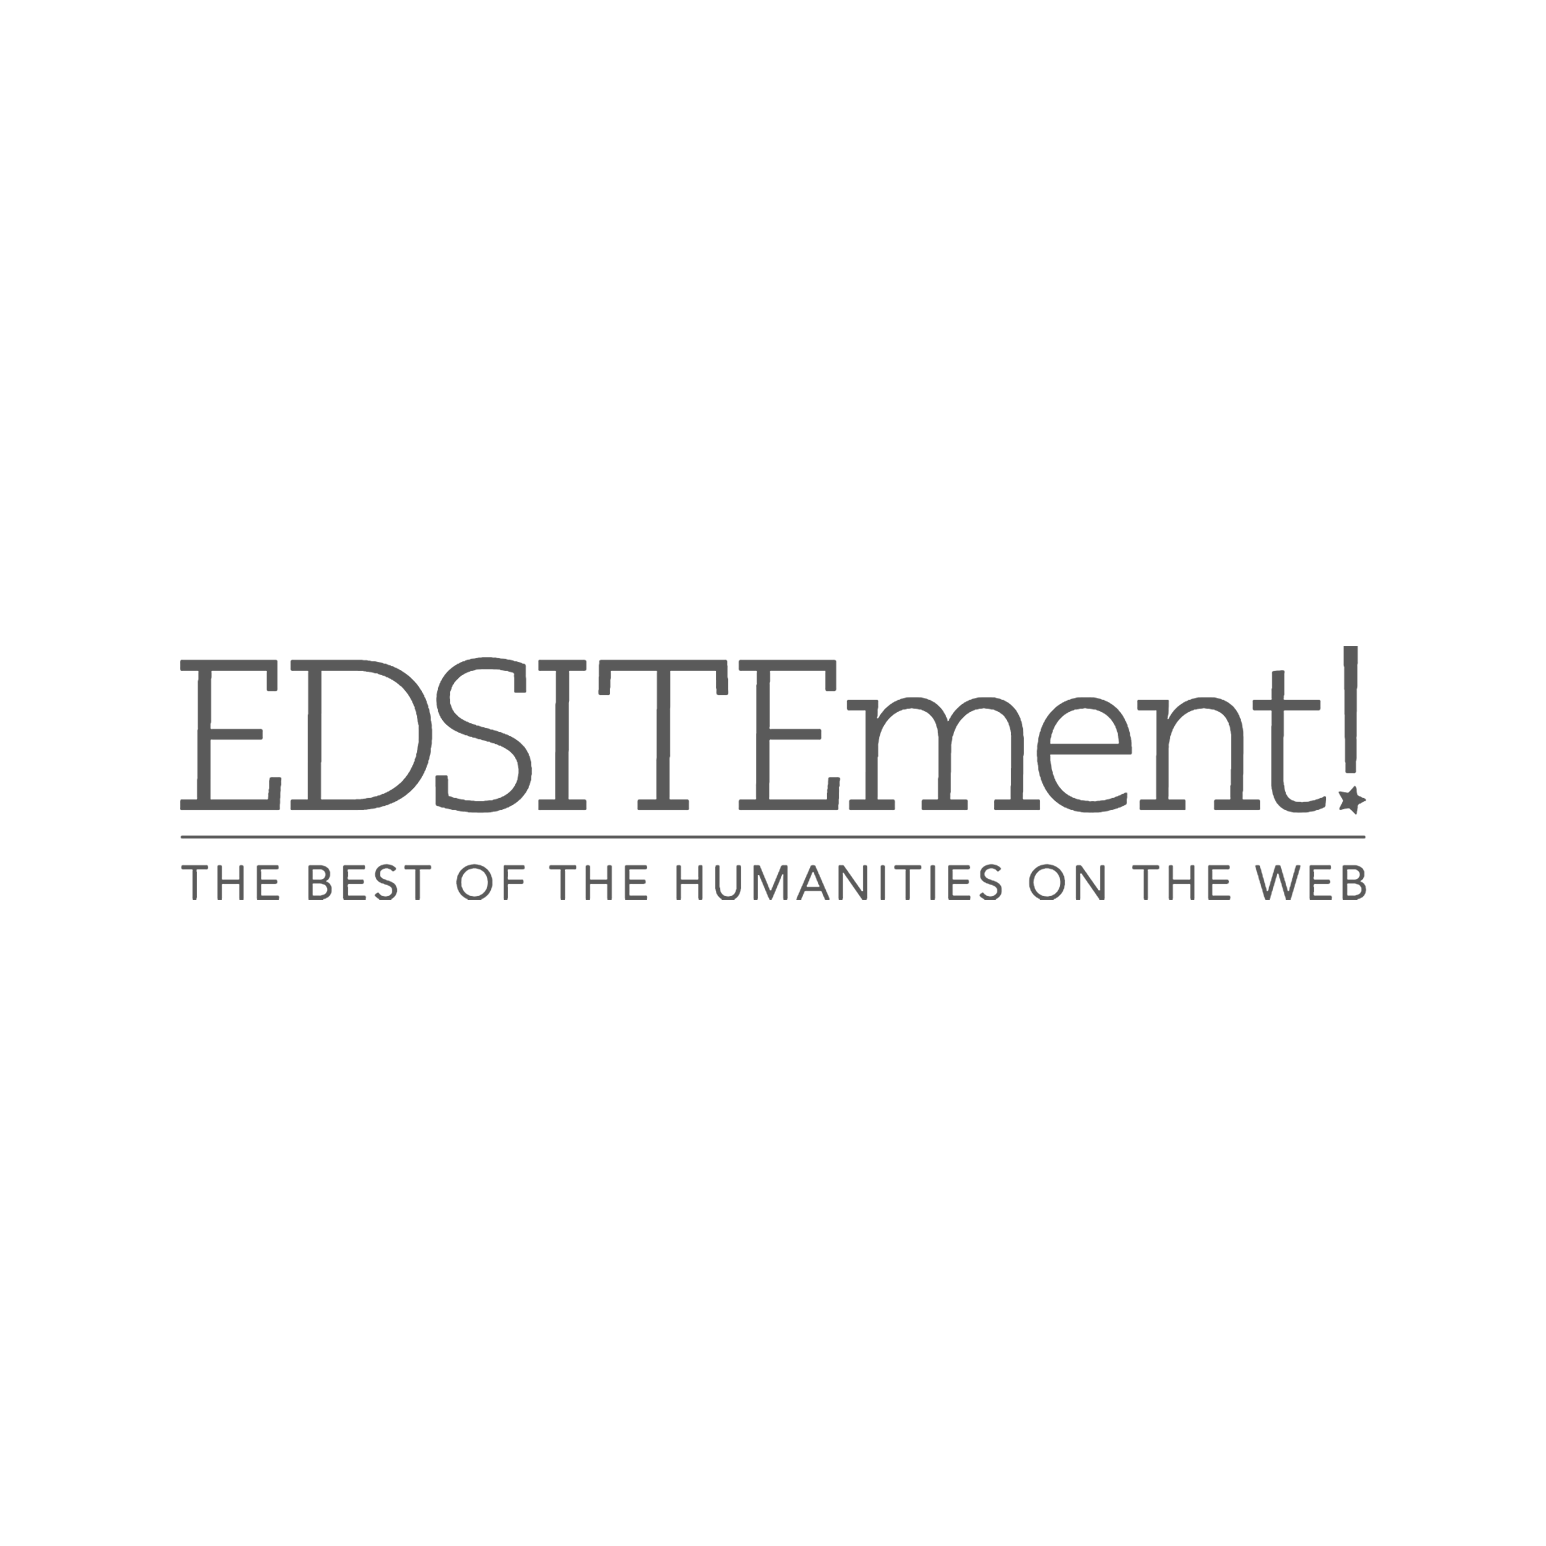 National Endowment for the Humanities, EDSITEment Project